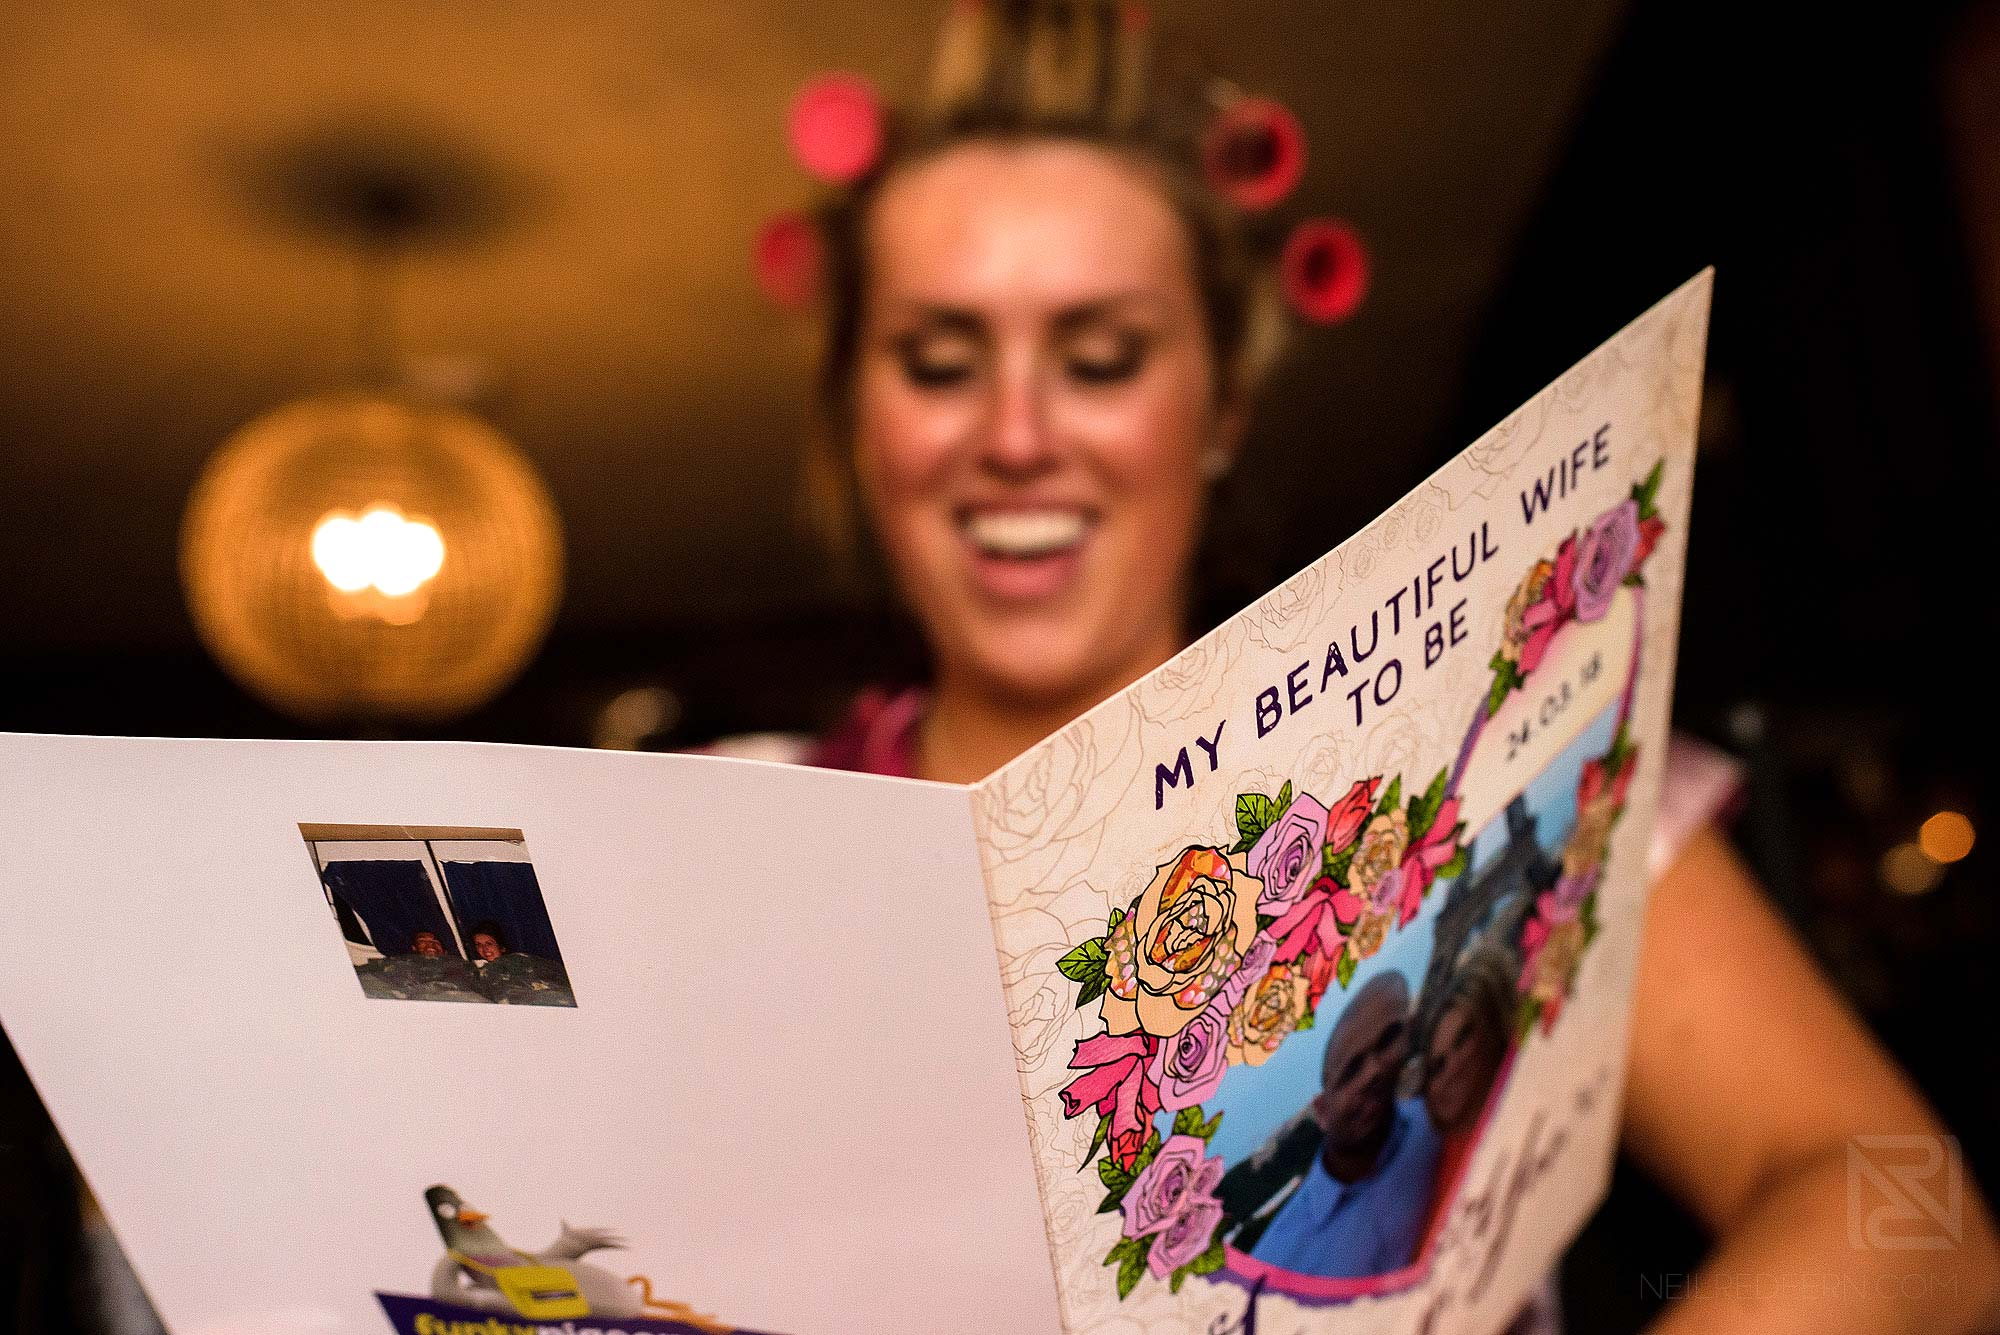 bride reading card from groom on morning of wedding